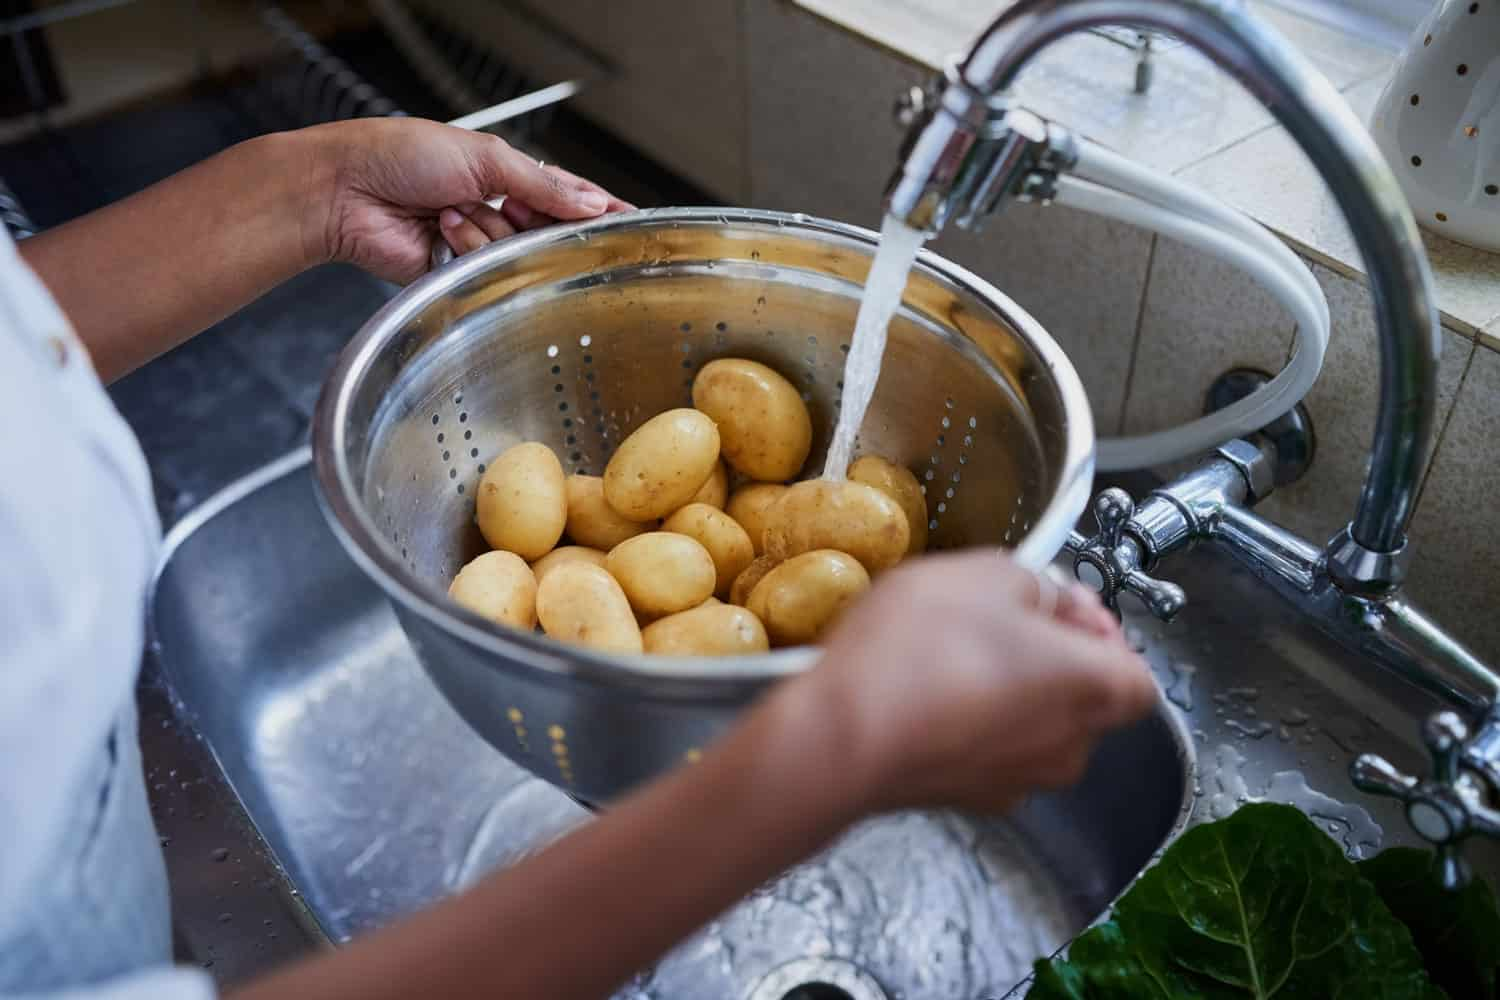 Cropped shot of a woman rinsing potatoes in a kitchen sink at home